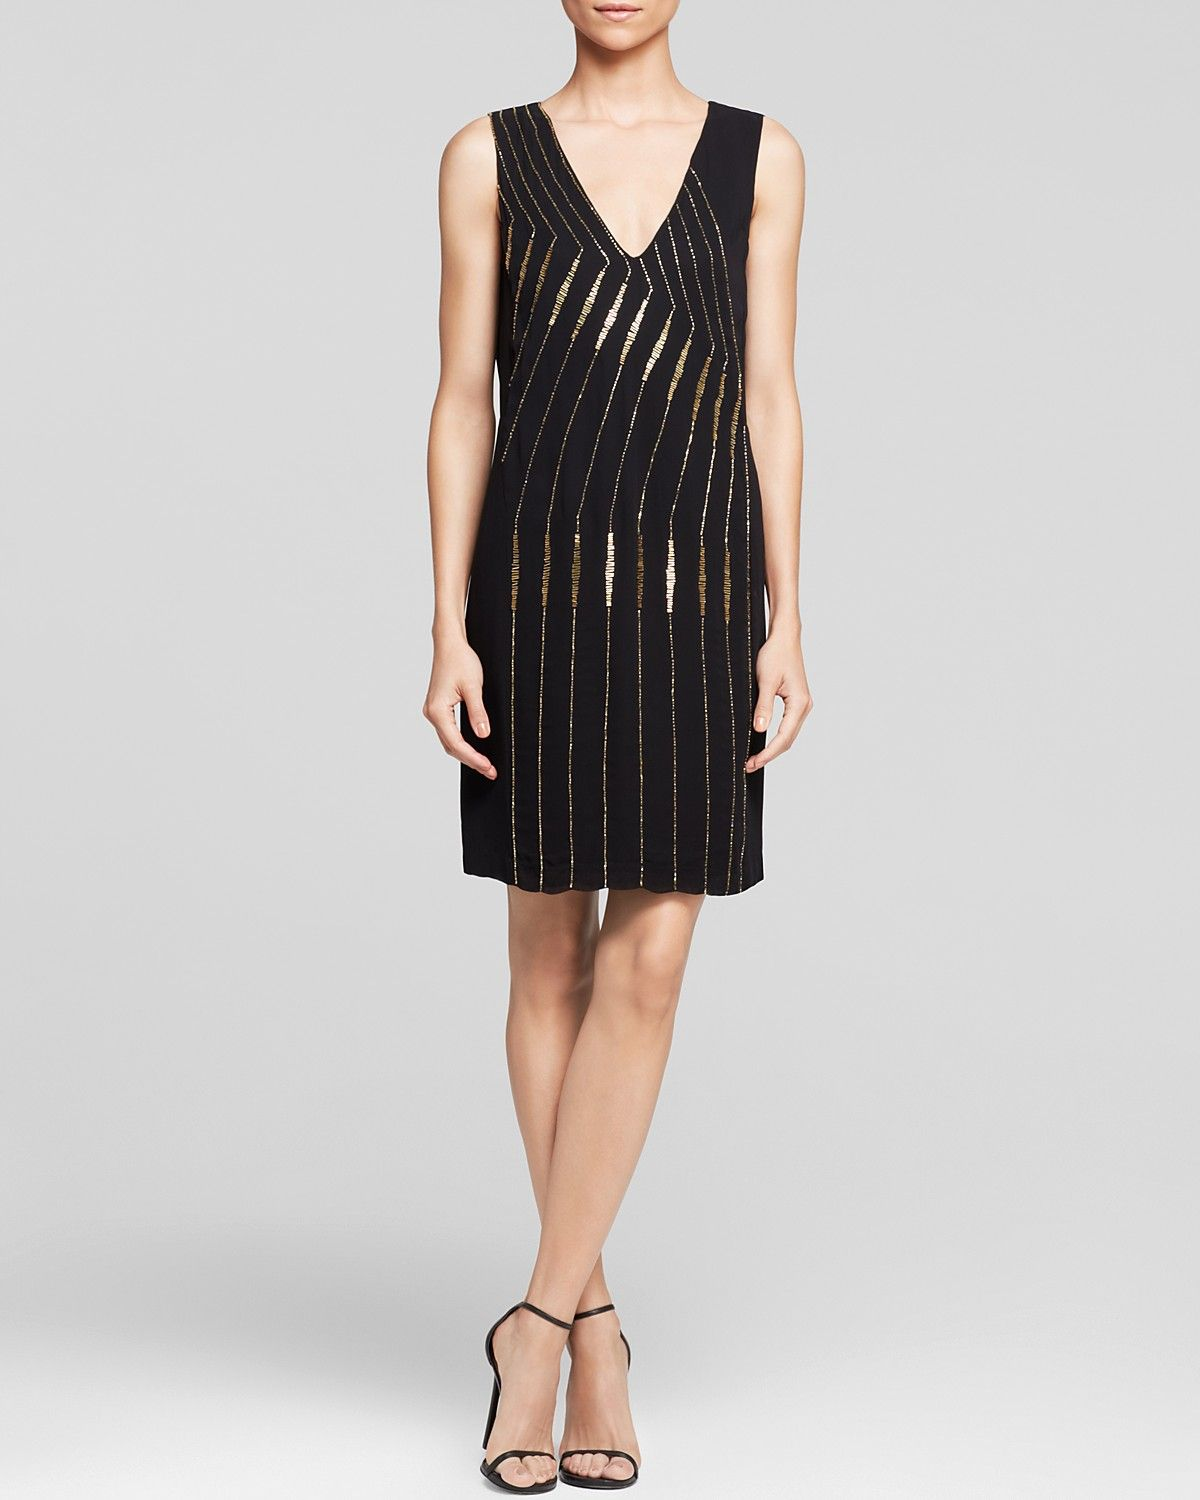 French connection dress atlantic wave style pinterest french